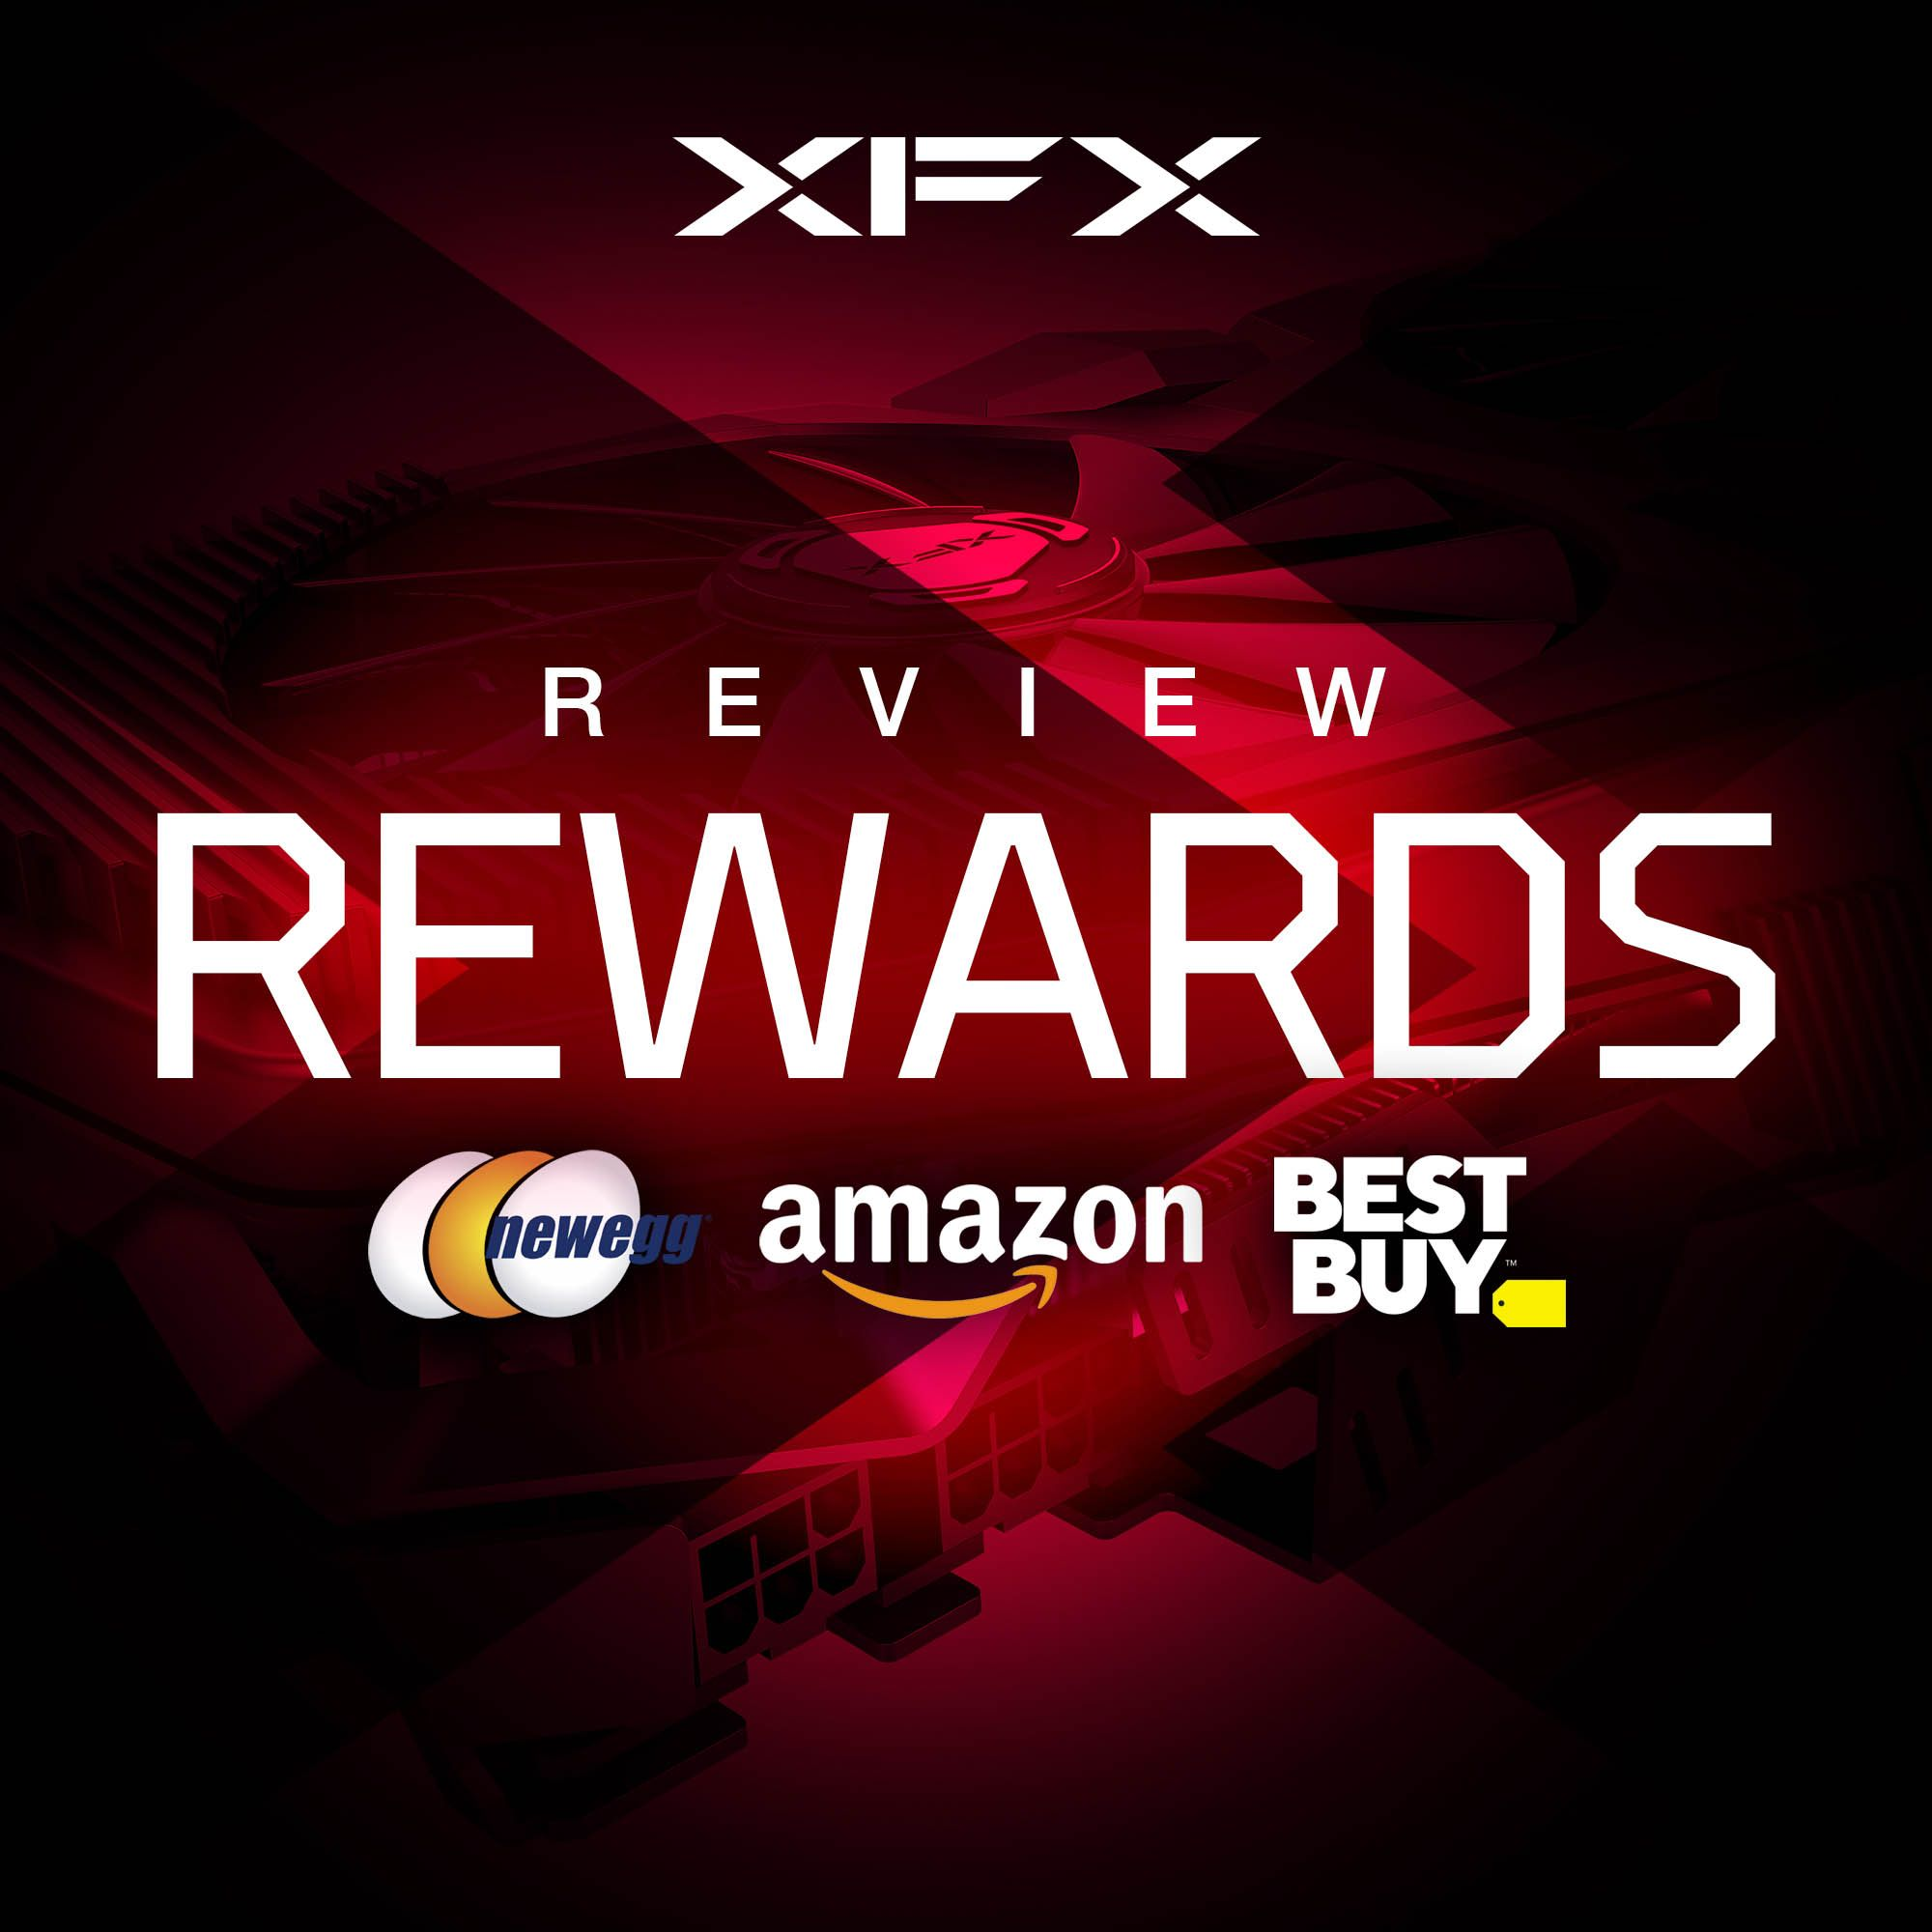 For a limited time receive a 20 amazon gift card with a